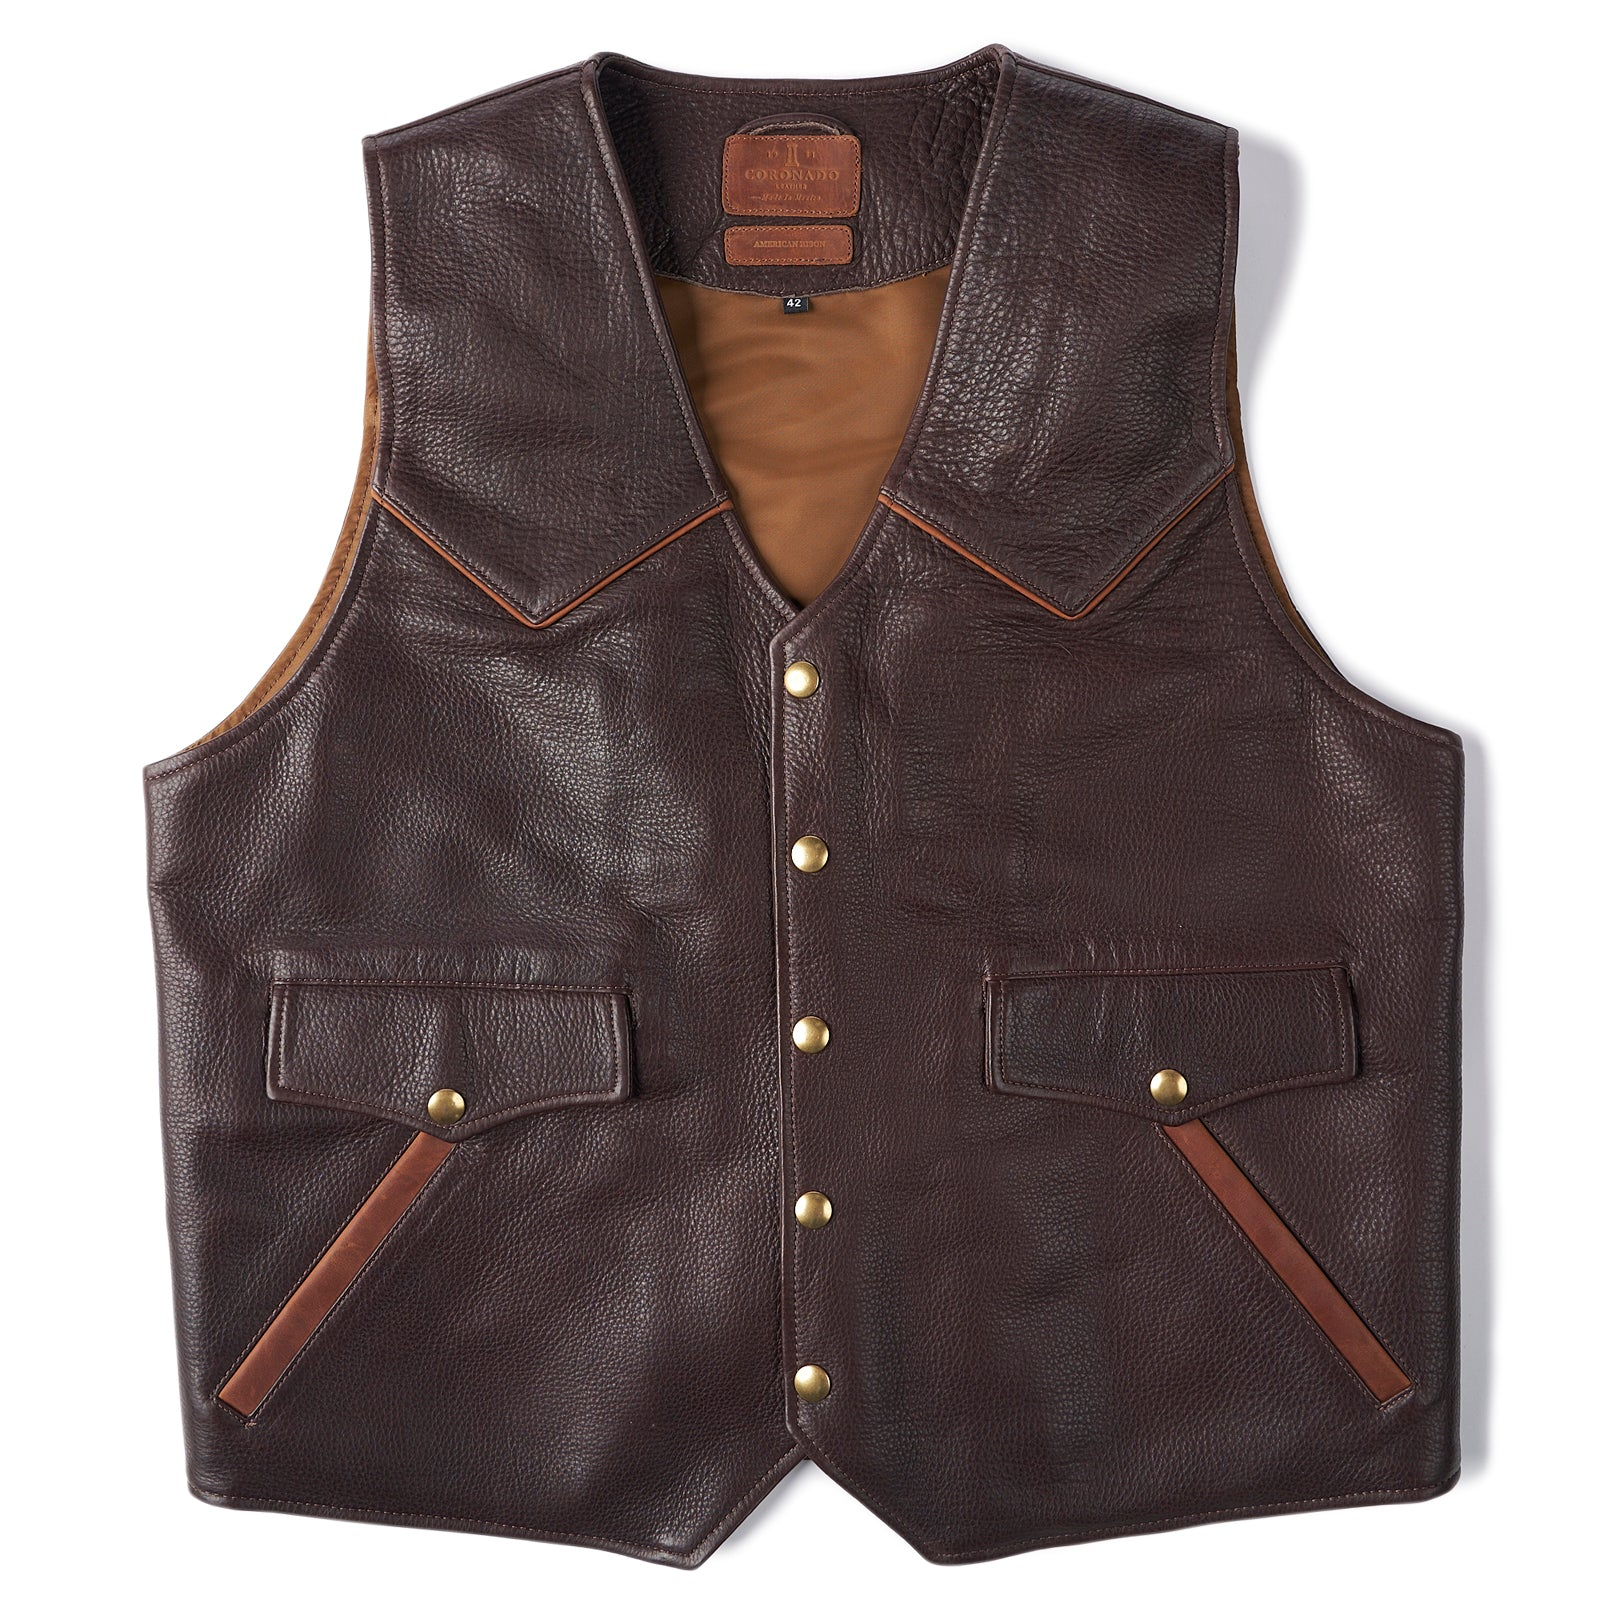 Circle-C Vest No. 91 (IN-PRODUCTION)